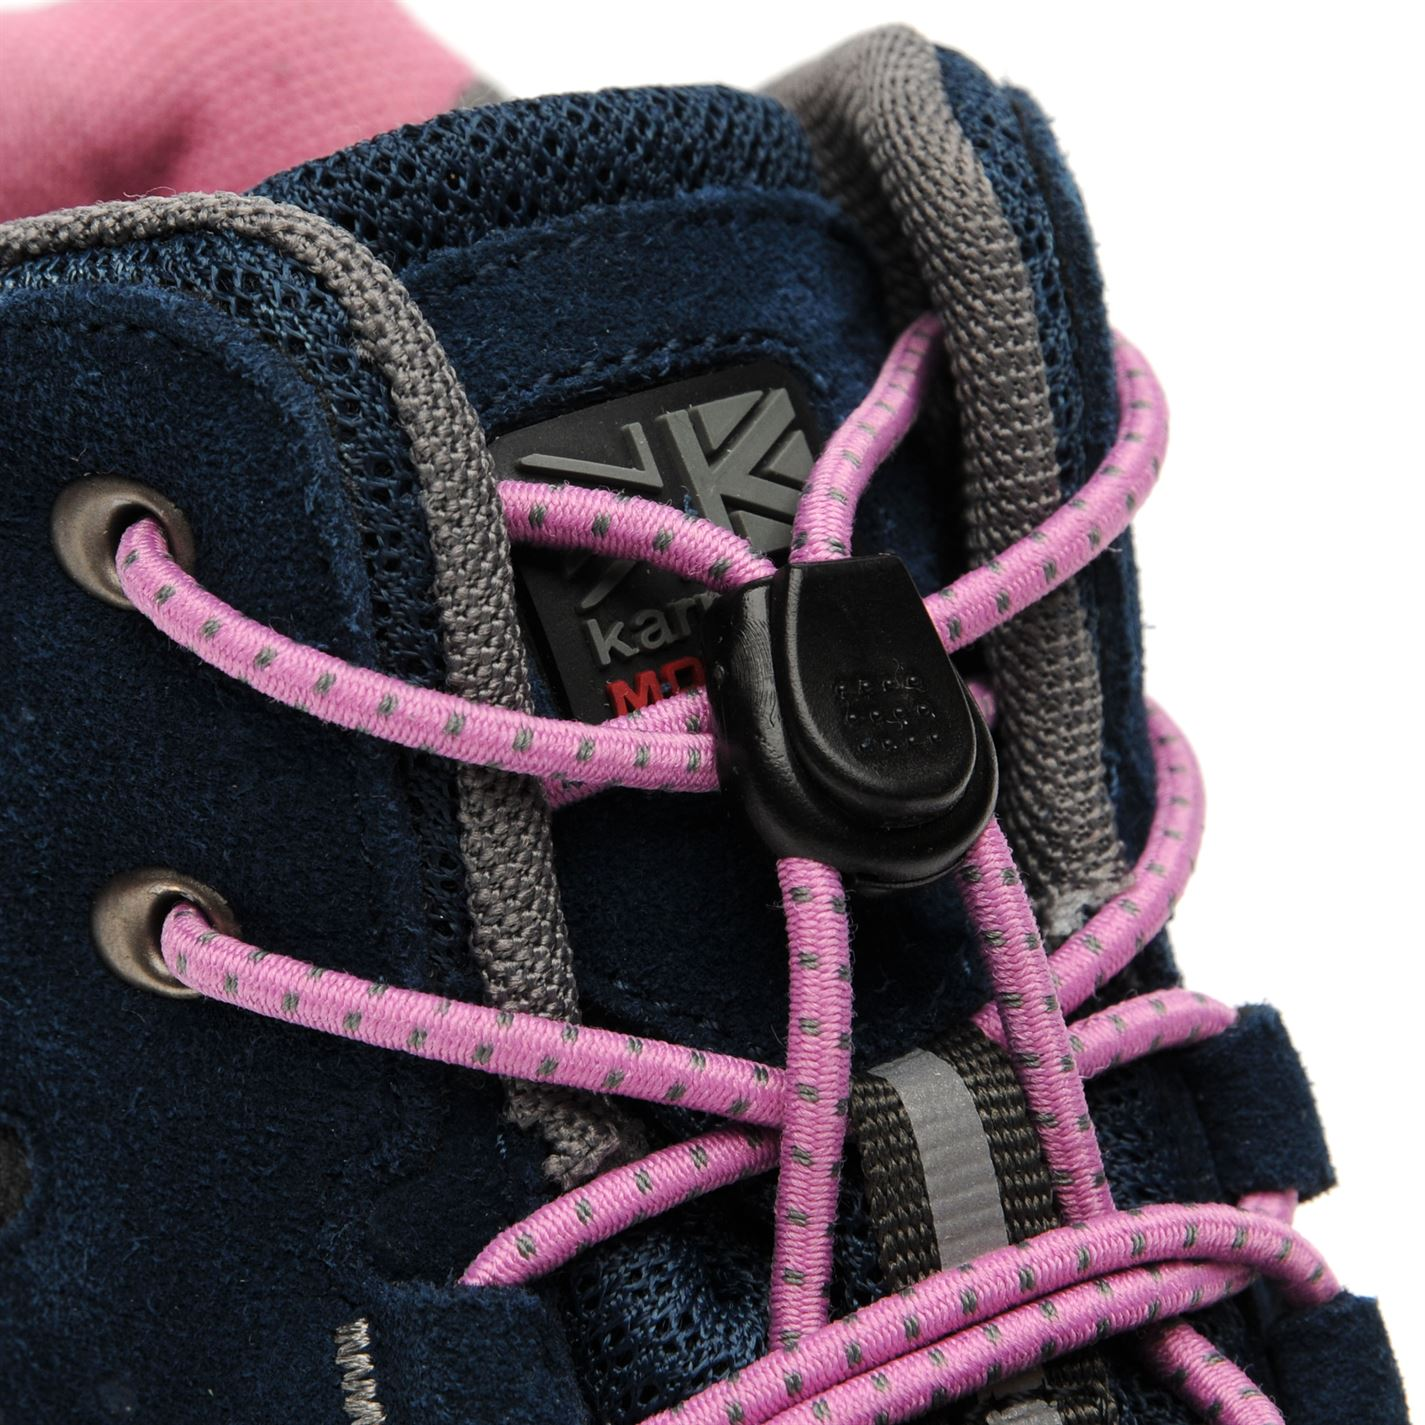 b1a2433d136 Details about Karrimor Kids Mount Mid Childs Walking Boots